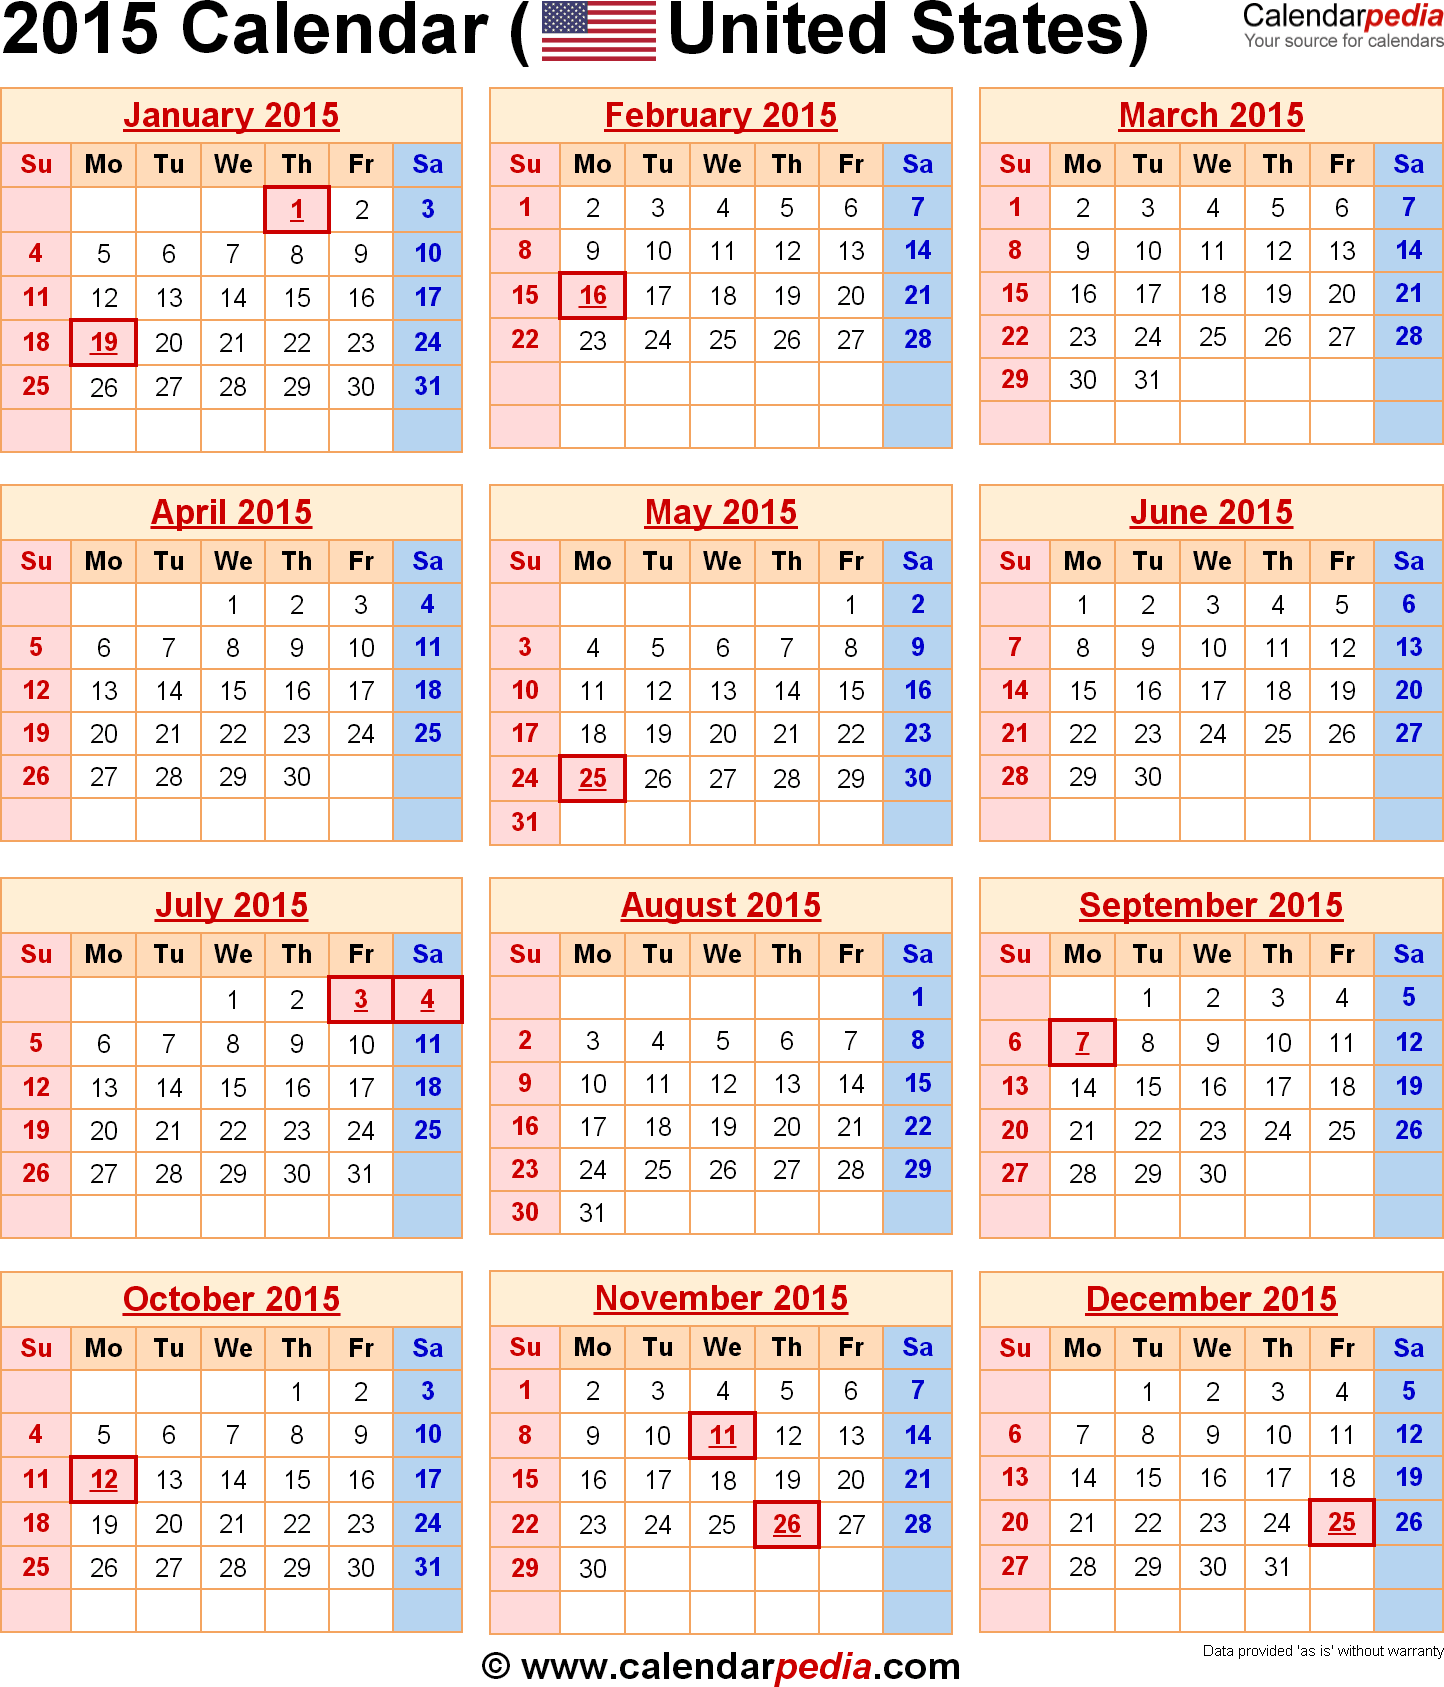 2015 calendars | 2015 calendar with federal holidays & excel/pdf